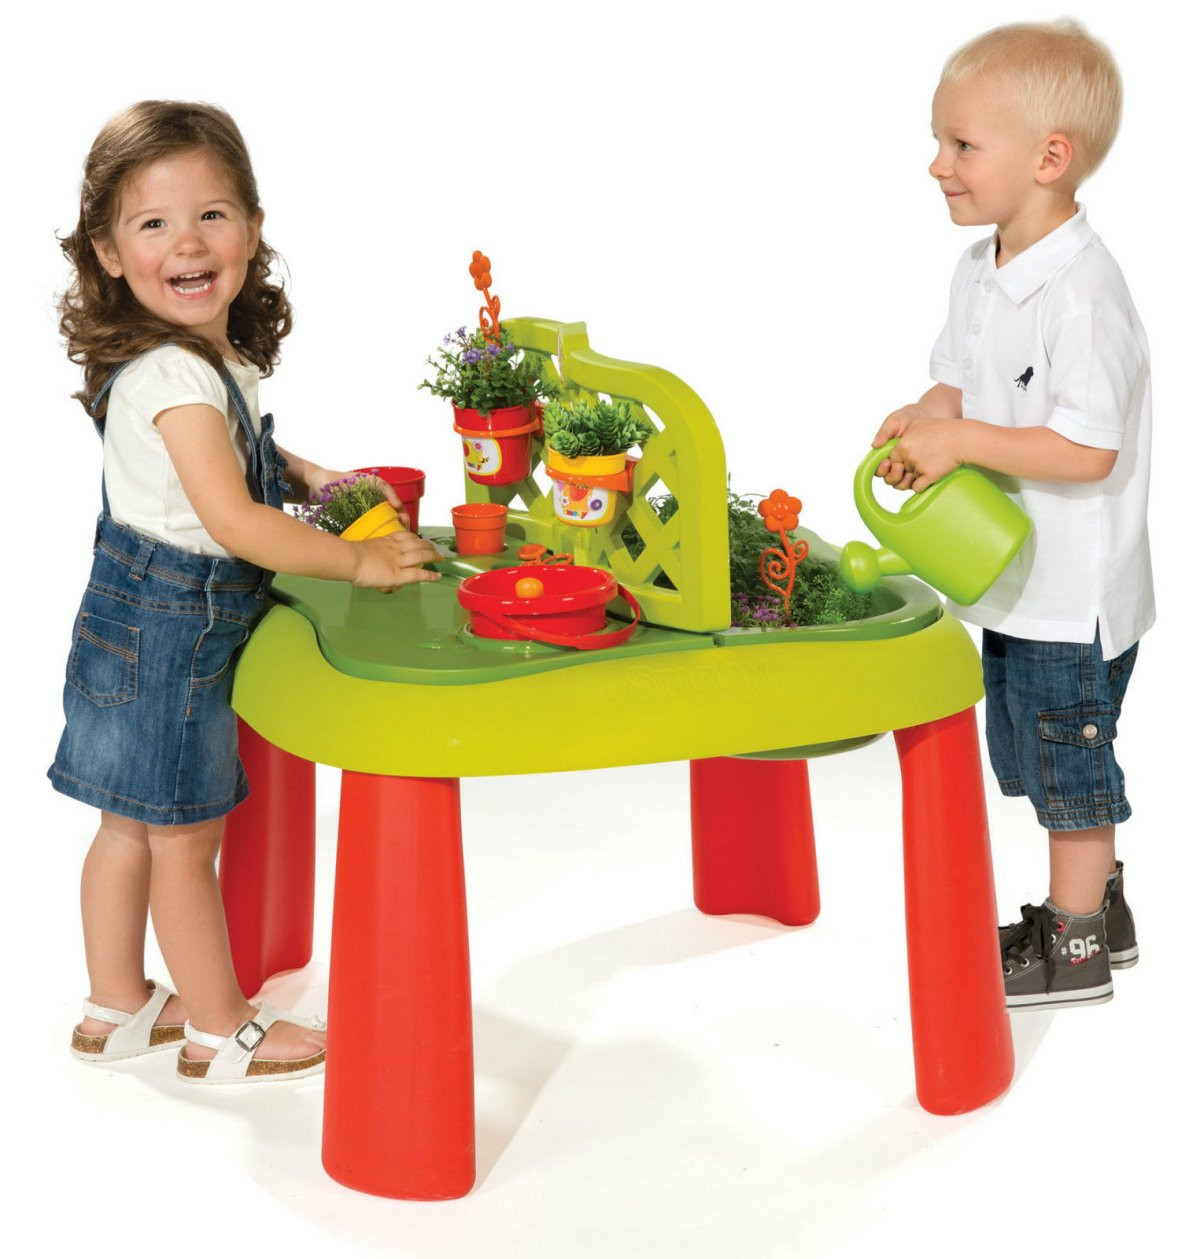 Childrens Play Table Smoby Kids Gardening Table Childrens Play Garden Set